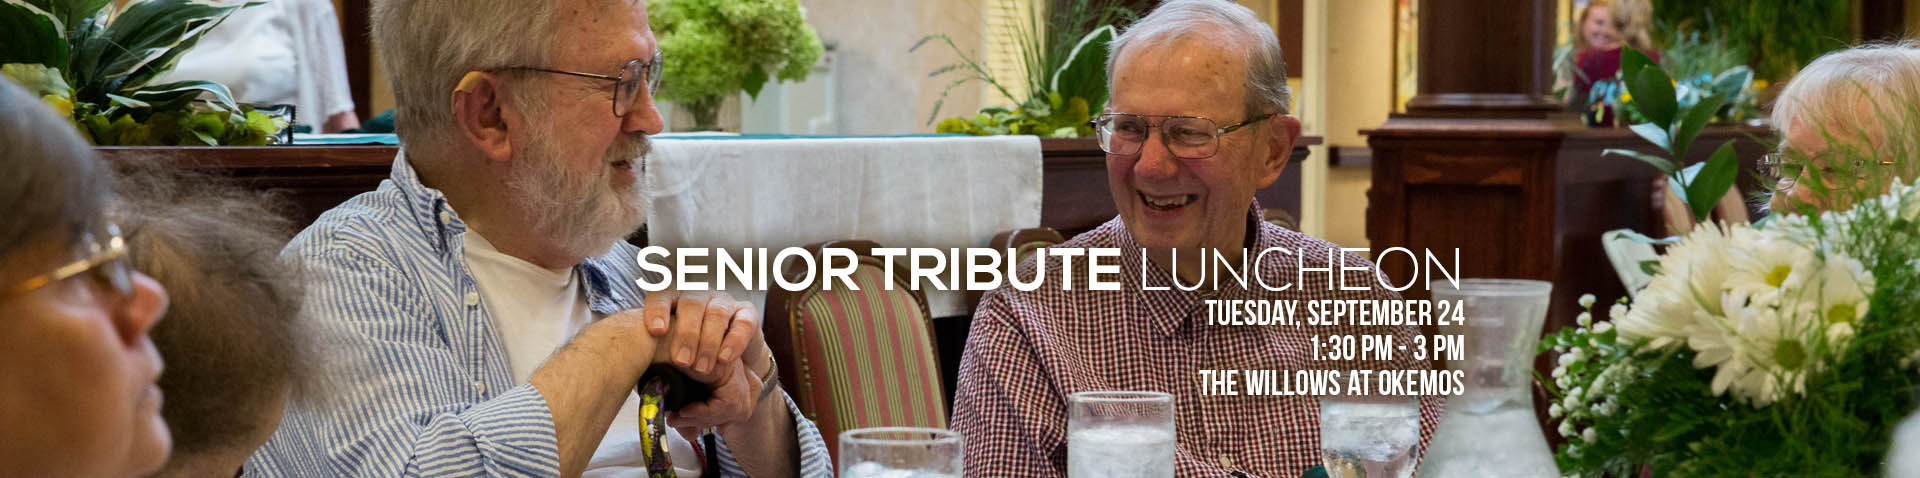 Senior Tribute Luncheon